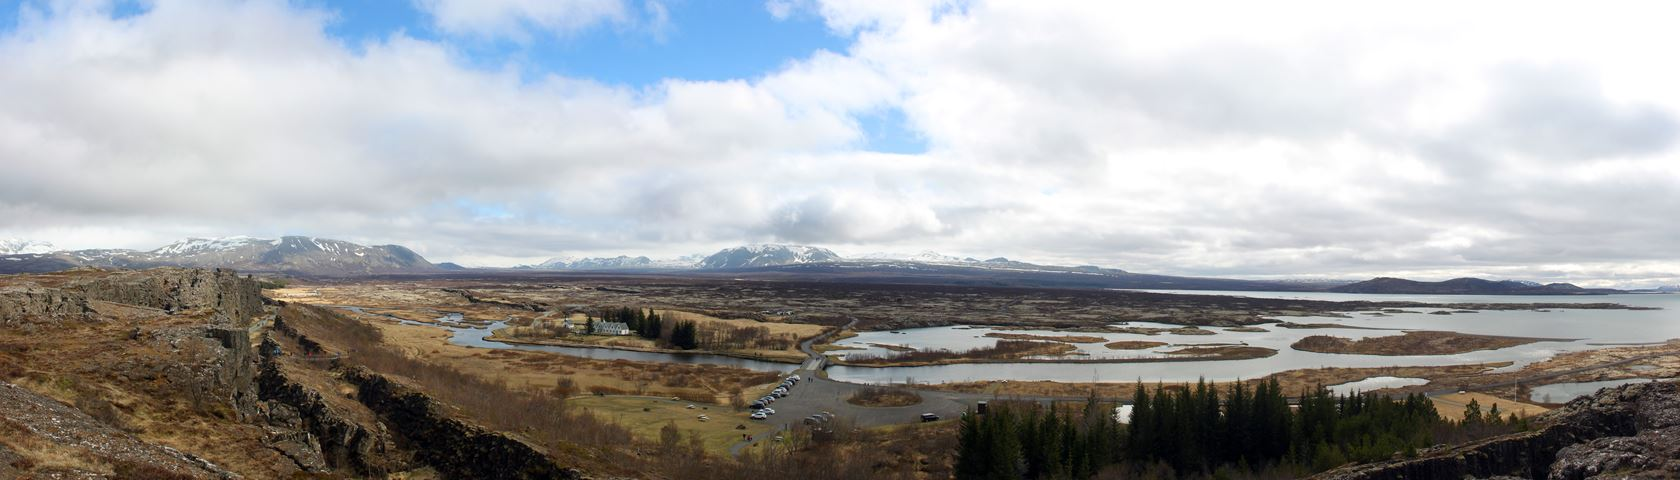 Eyjafjallajokull from a Distance